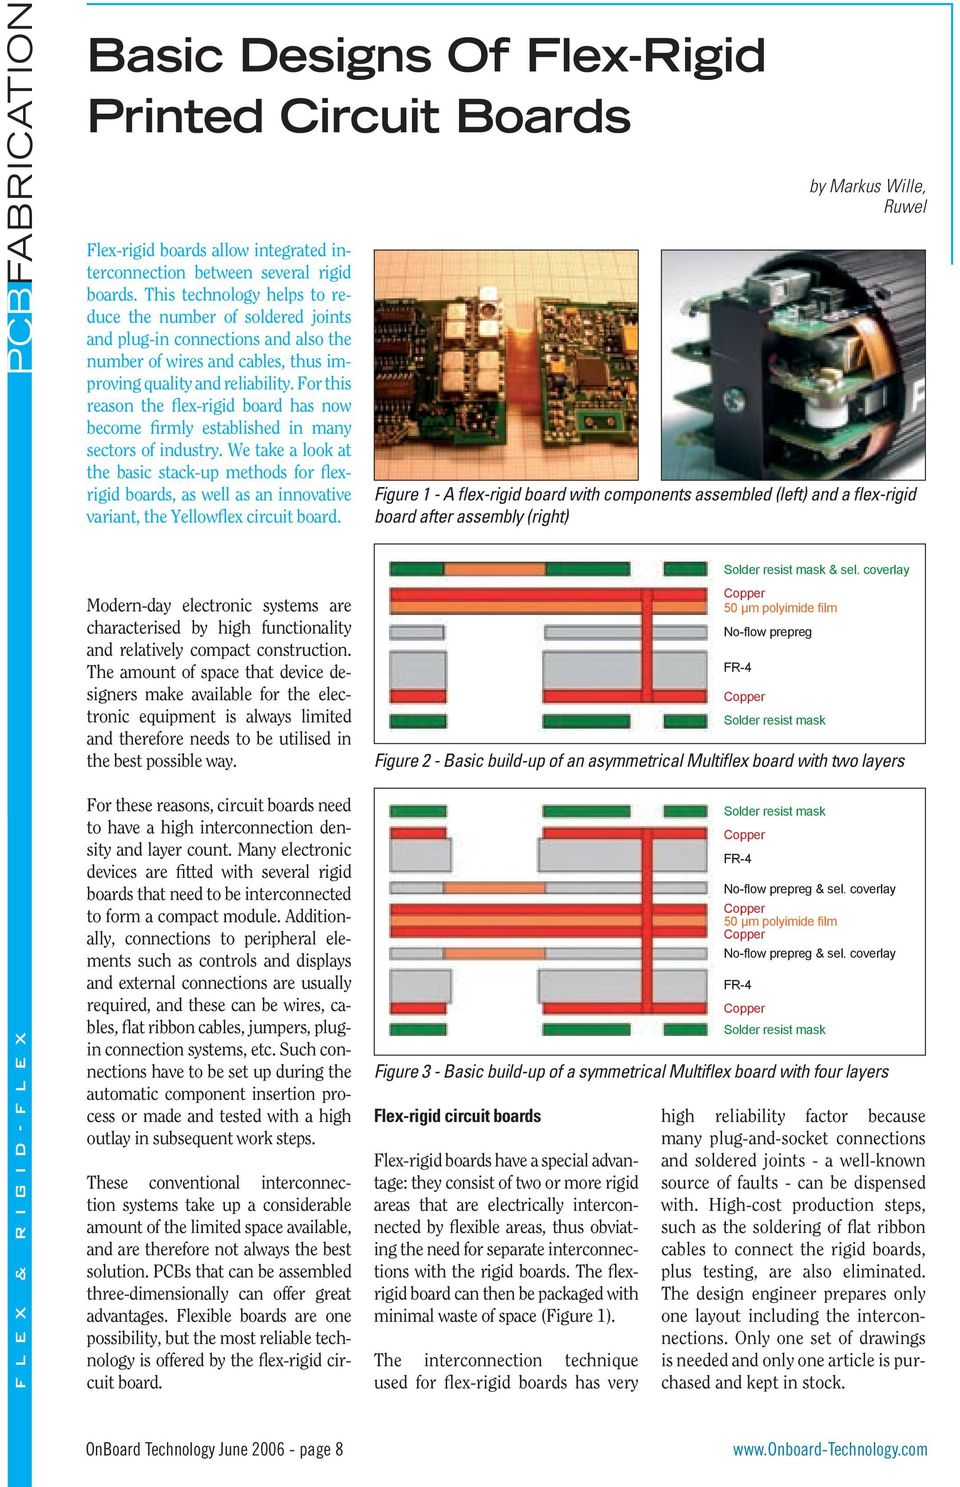 Basic Designs Of Flex Rigid Printed Circuit Boards Pdf Board Using Hdi Technology For This Reason The Has Now Become Firmly Established In Many Sectors